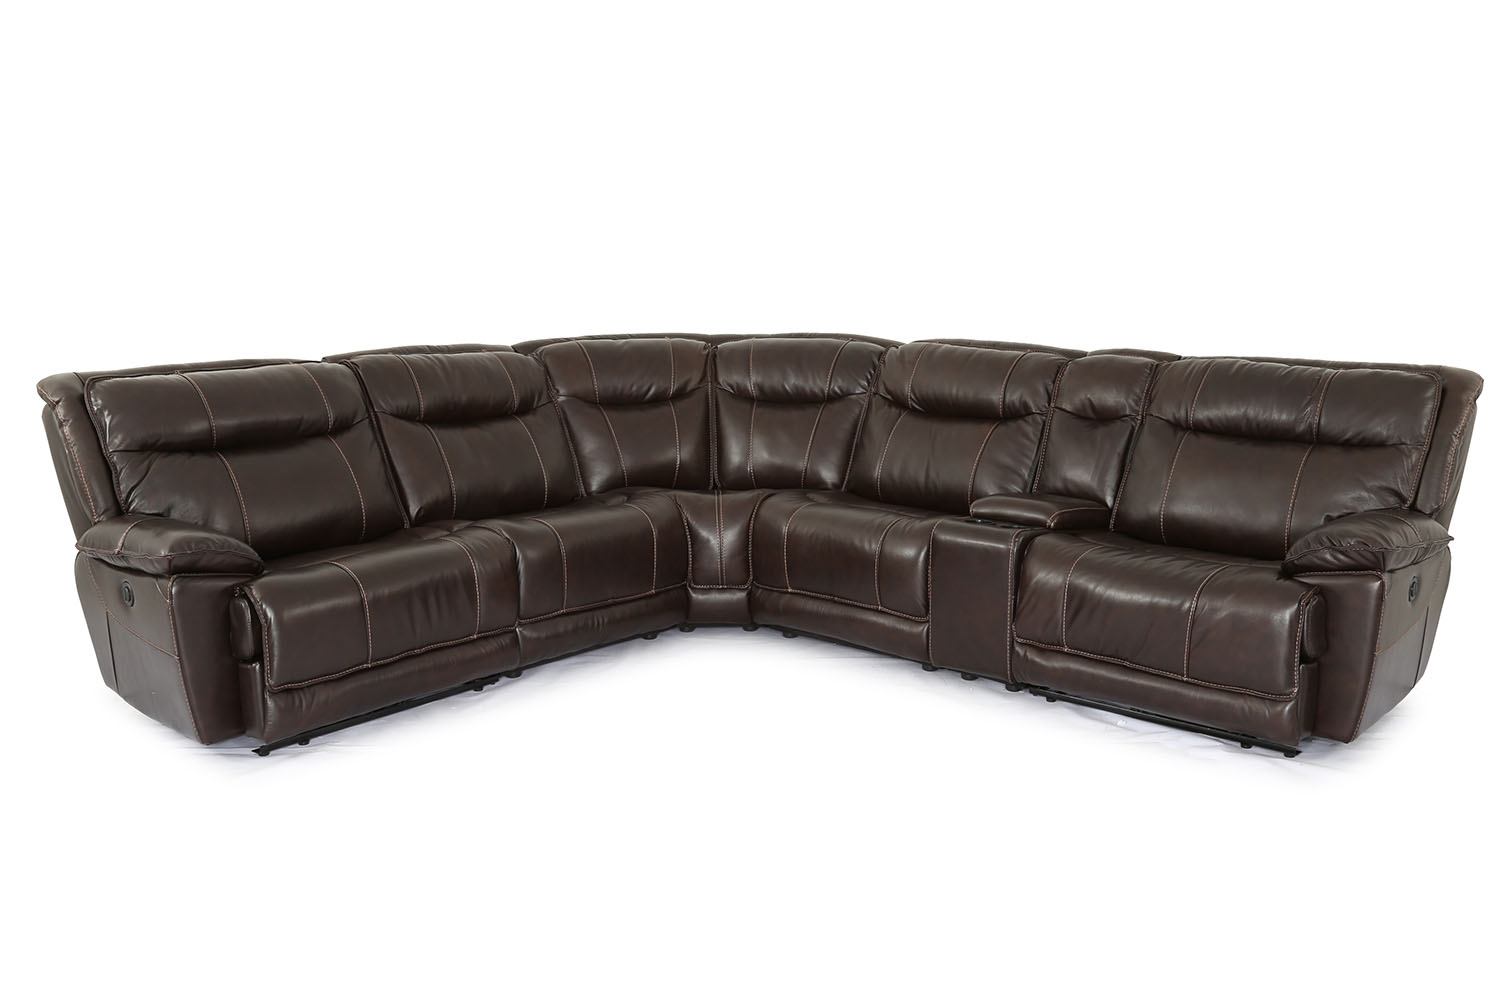 Miraculous Boba Reclining Leather 6 Piece Sectional In Brown Mor Gmtry Best Dining Table And Chair Ideas Images Gmtryco